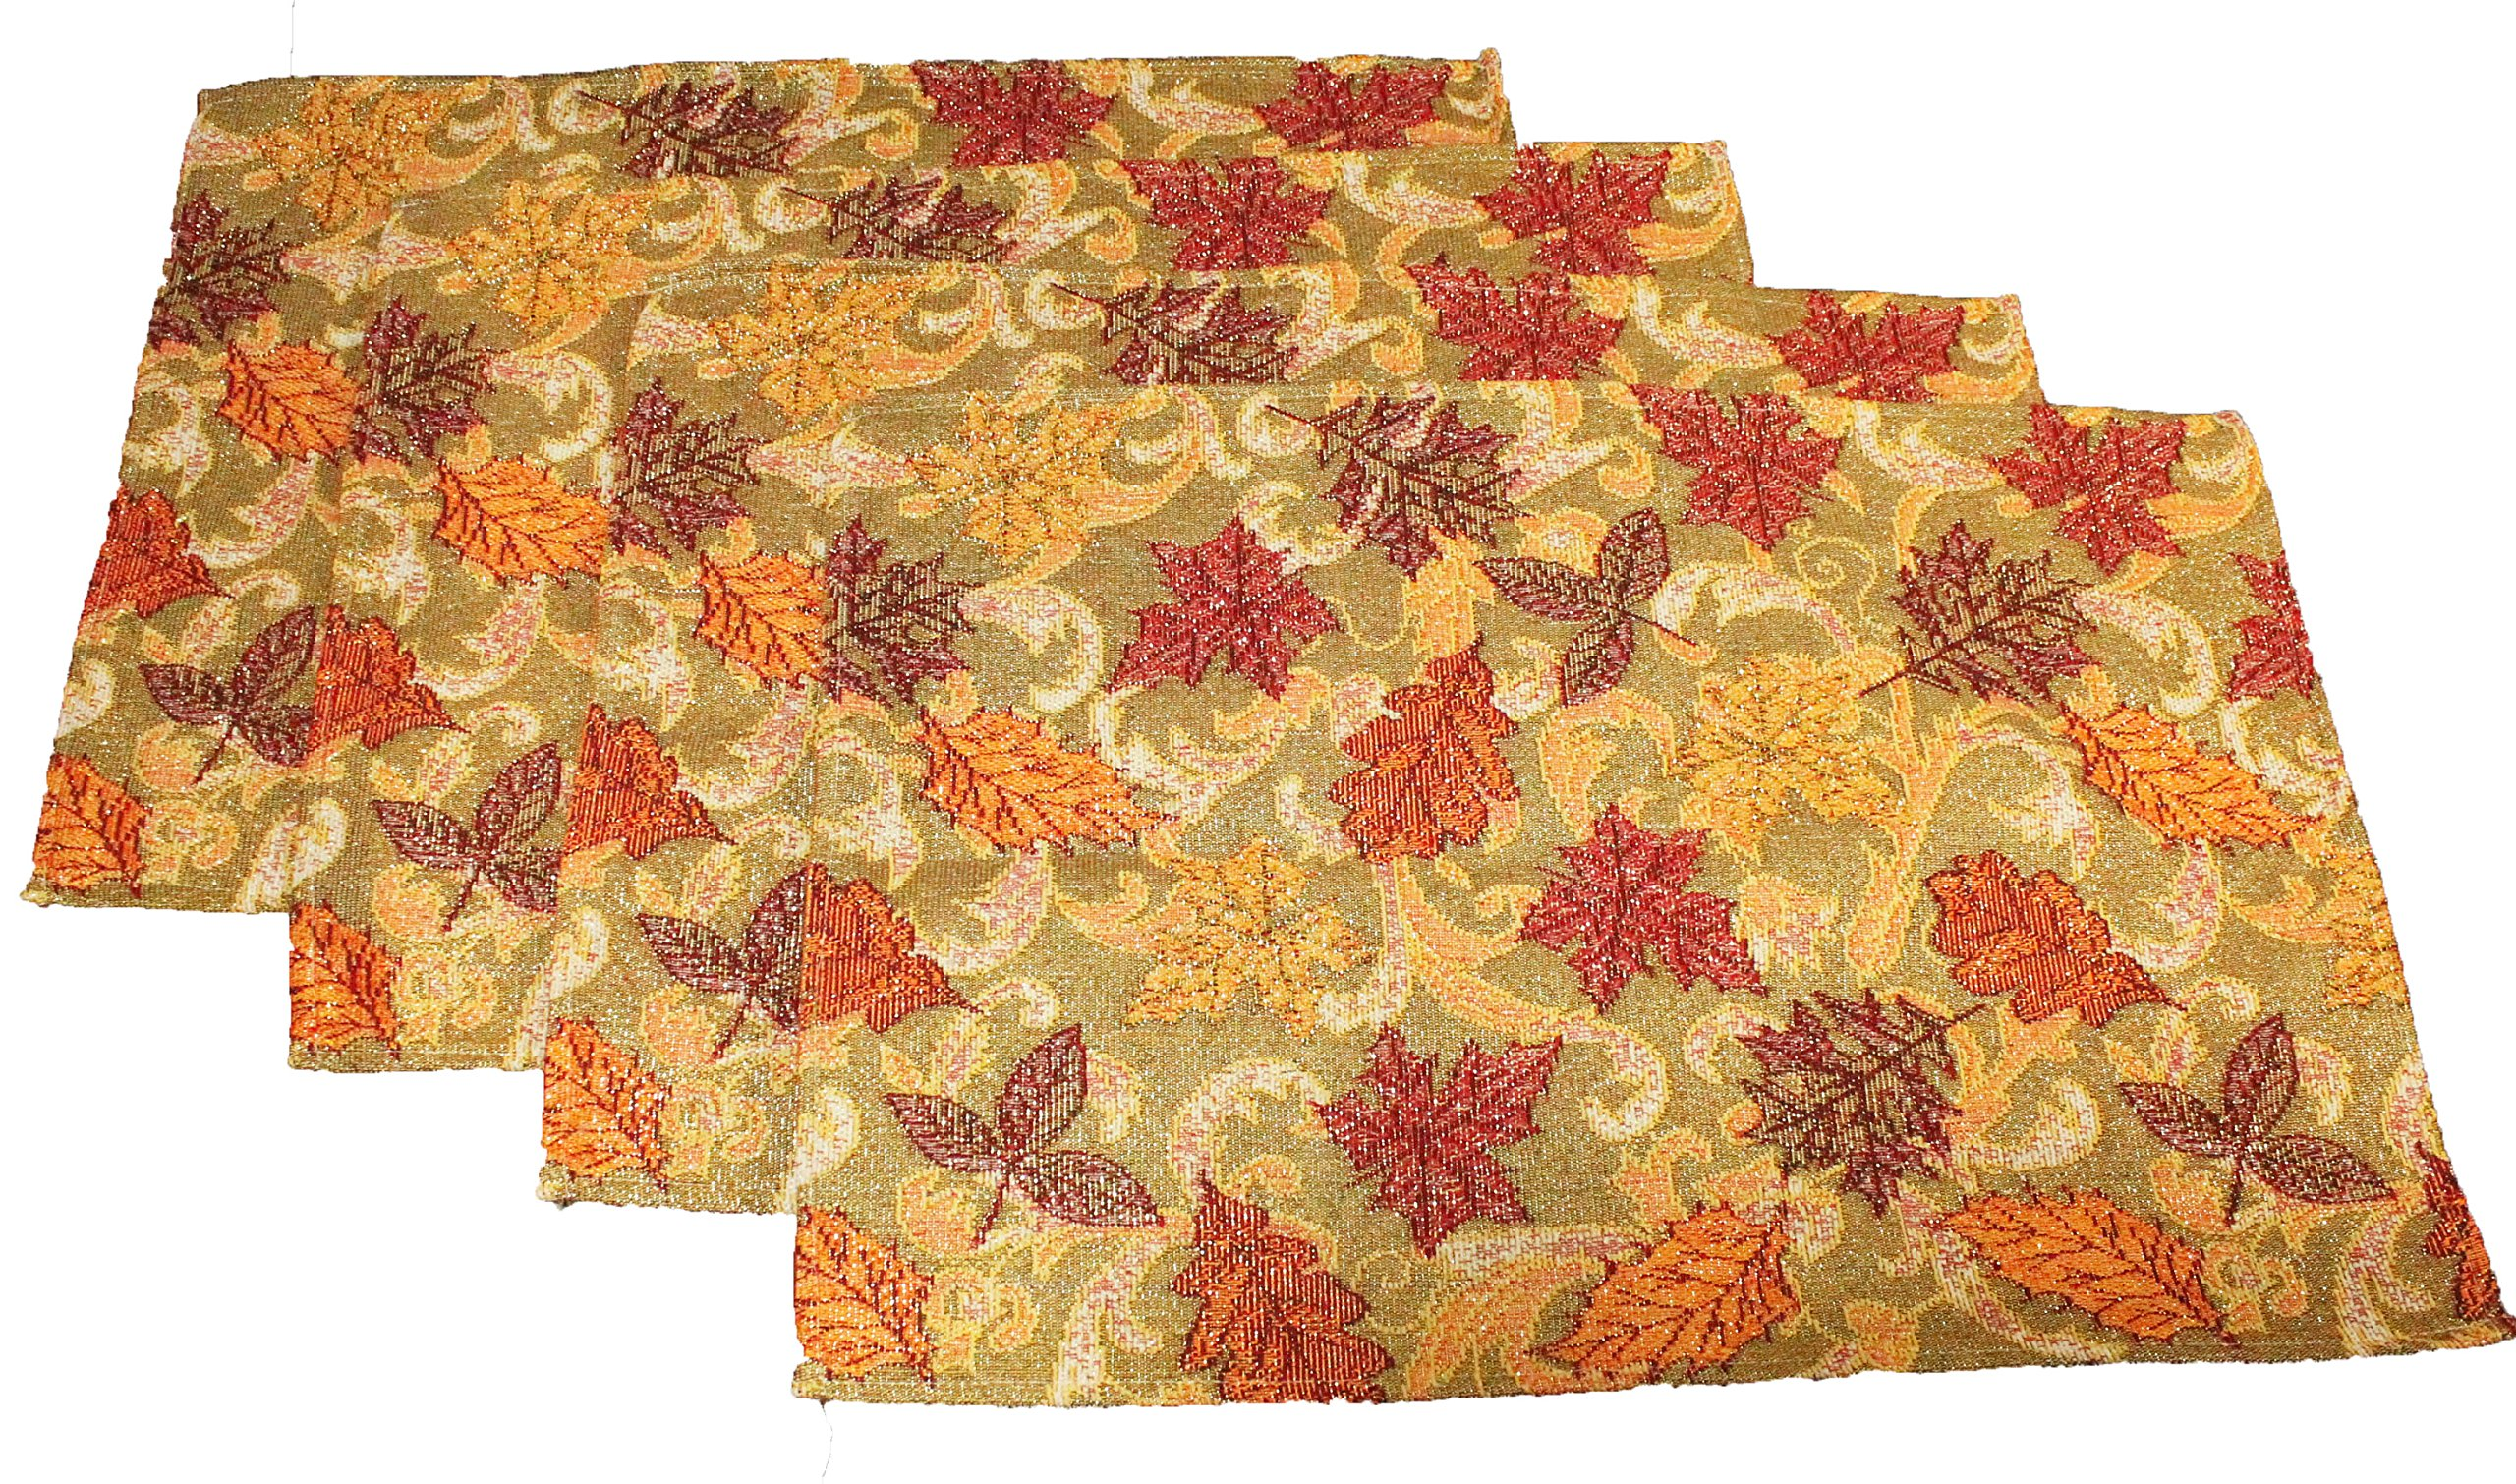 Twisted Anchor Trading Co Set of 4 Fall Leaves Placemats Golden Harvest - Sparkly Gold Thread Tapestry Style Autumn Home Decor Set